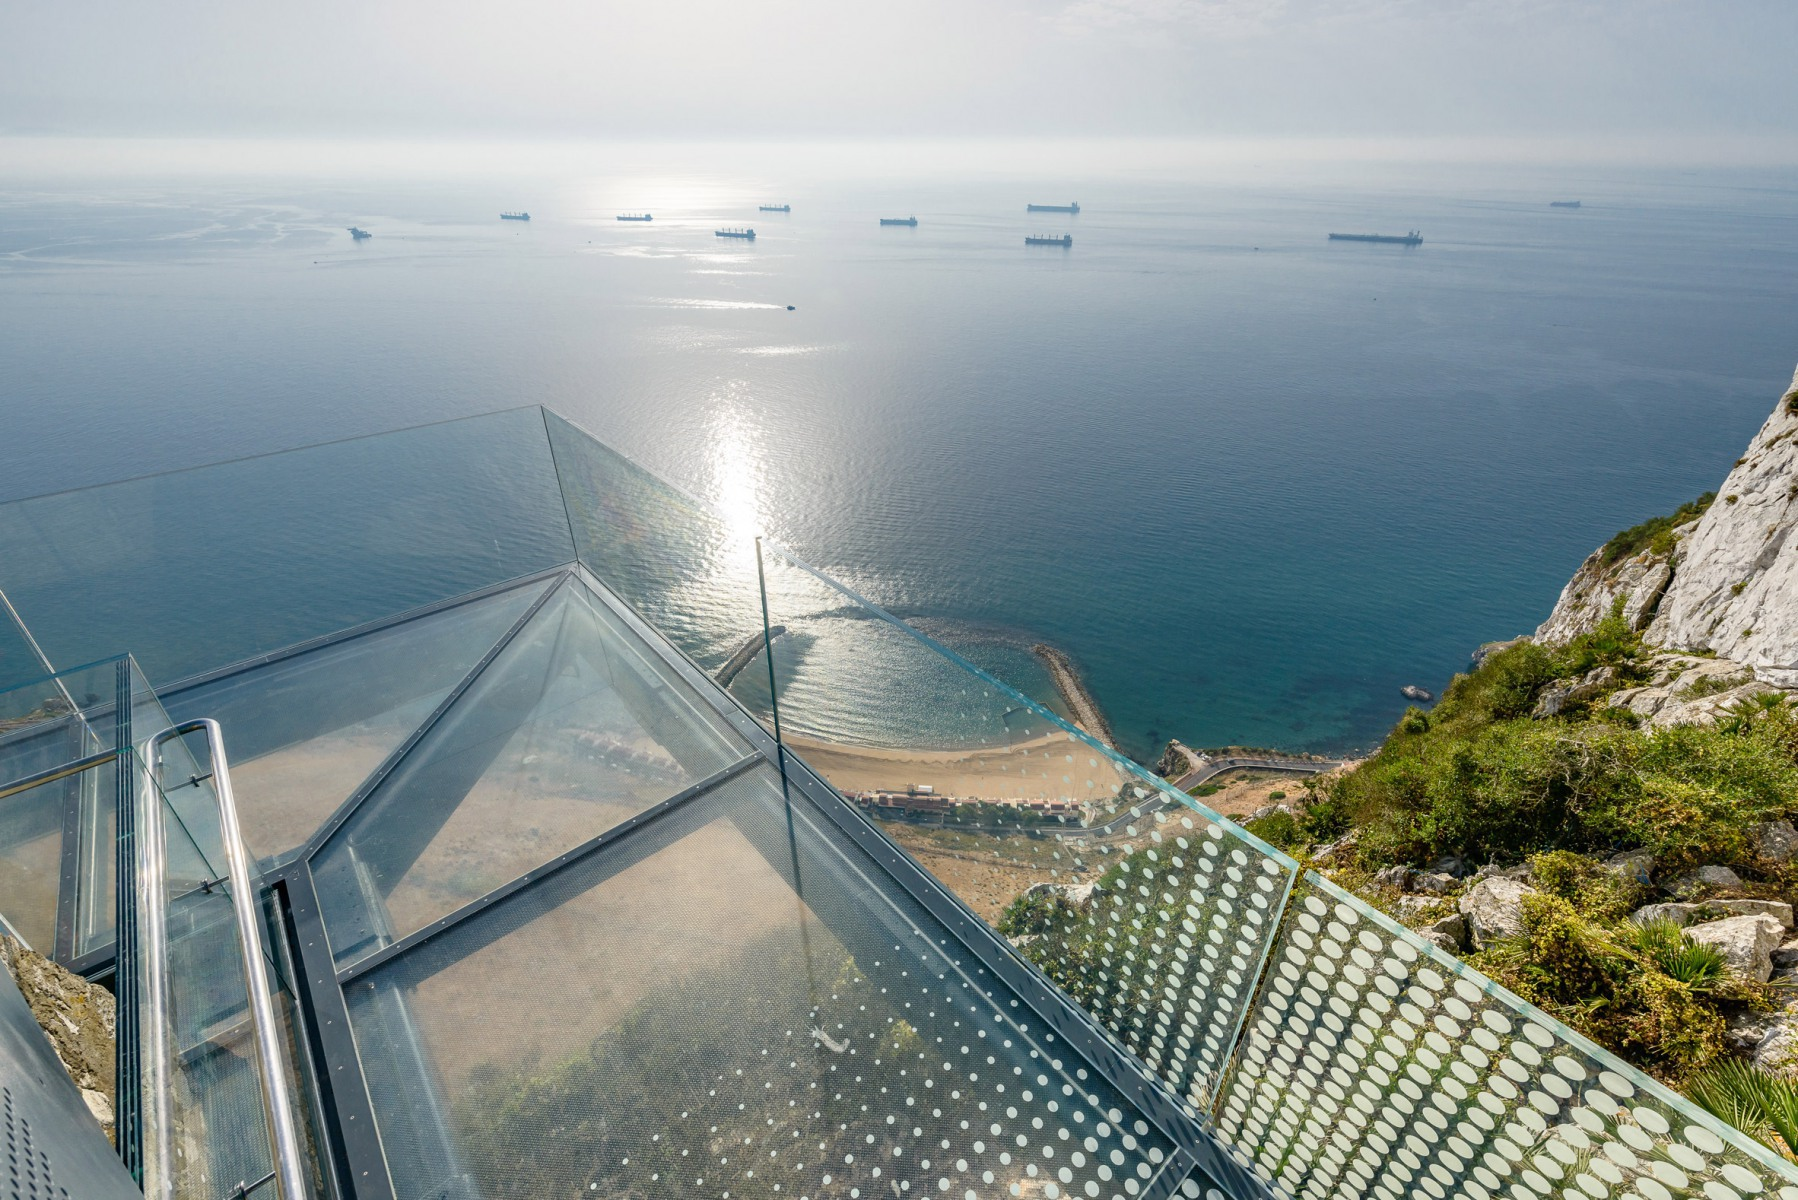 skywalk-gibraltar-13-photo-taken-for-bovis-koala-jv-by-meteogibs-photographer-stephen-ball_42273841775_o